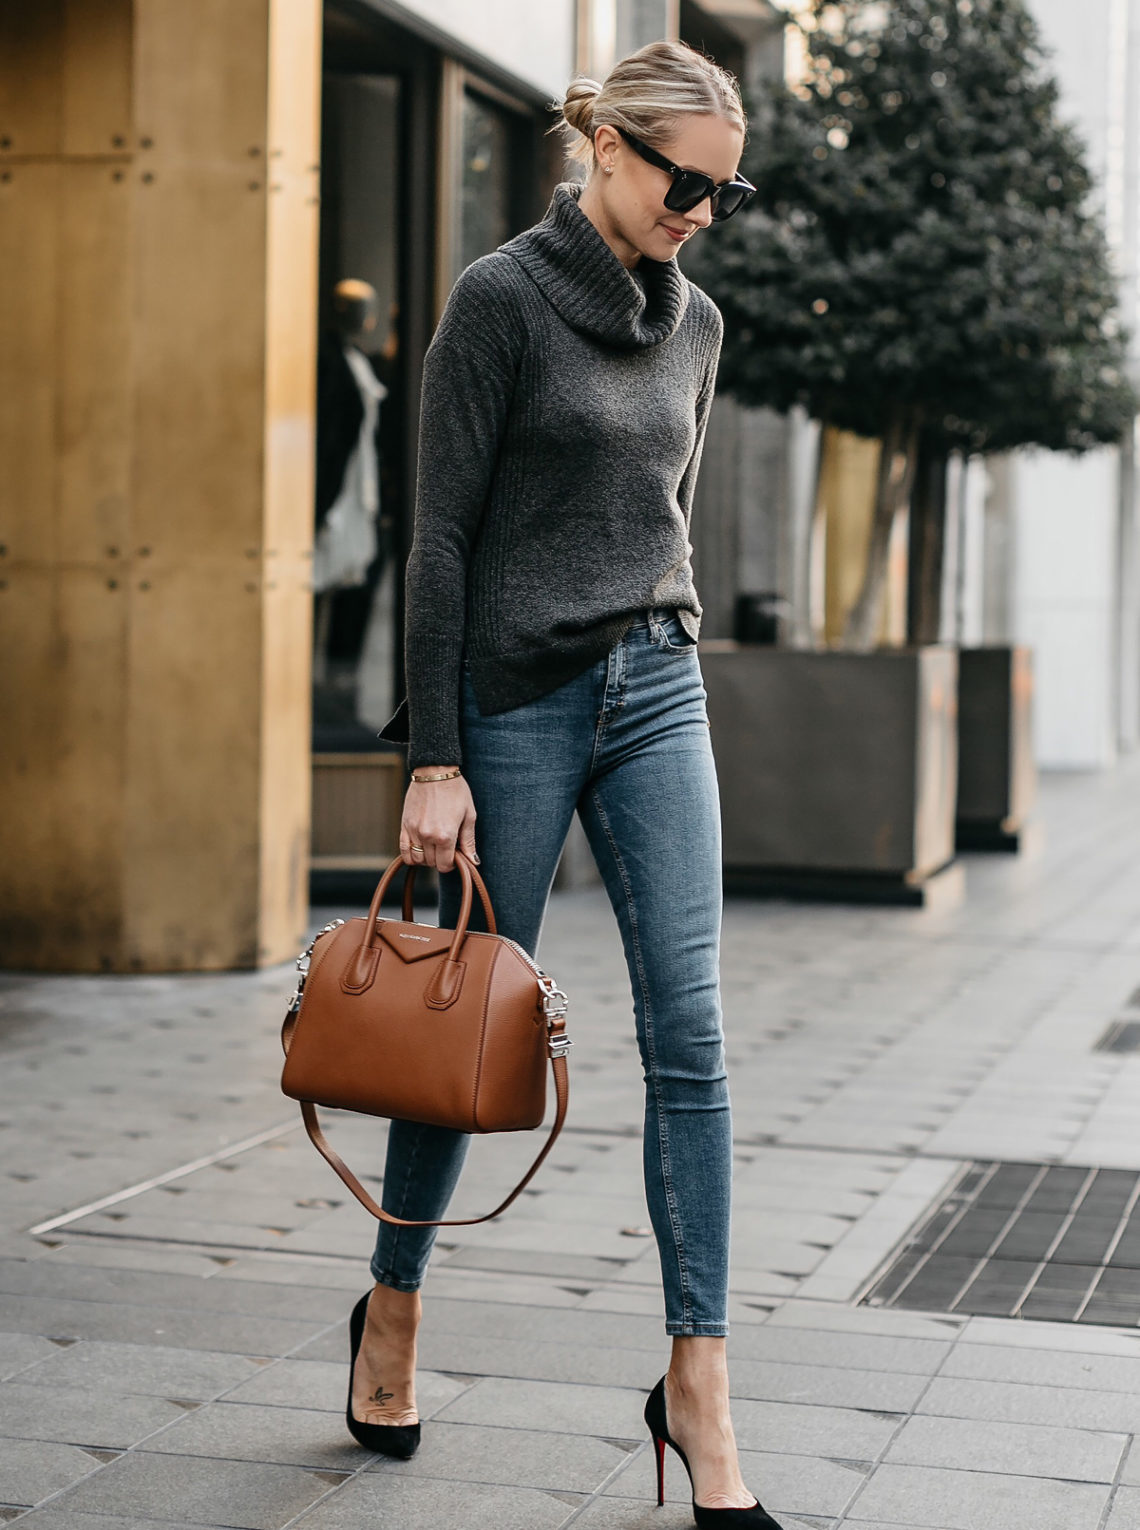 Blonde Woman Wearing Grey Turtleneck Sweater Denim Skinny Jeans Givenchy Antigona Cognac Handbag Black Pumps Fashion Jackson Dallas Blogger Fashion Blogger Street Style